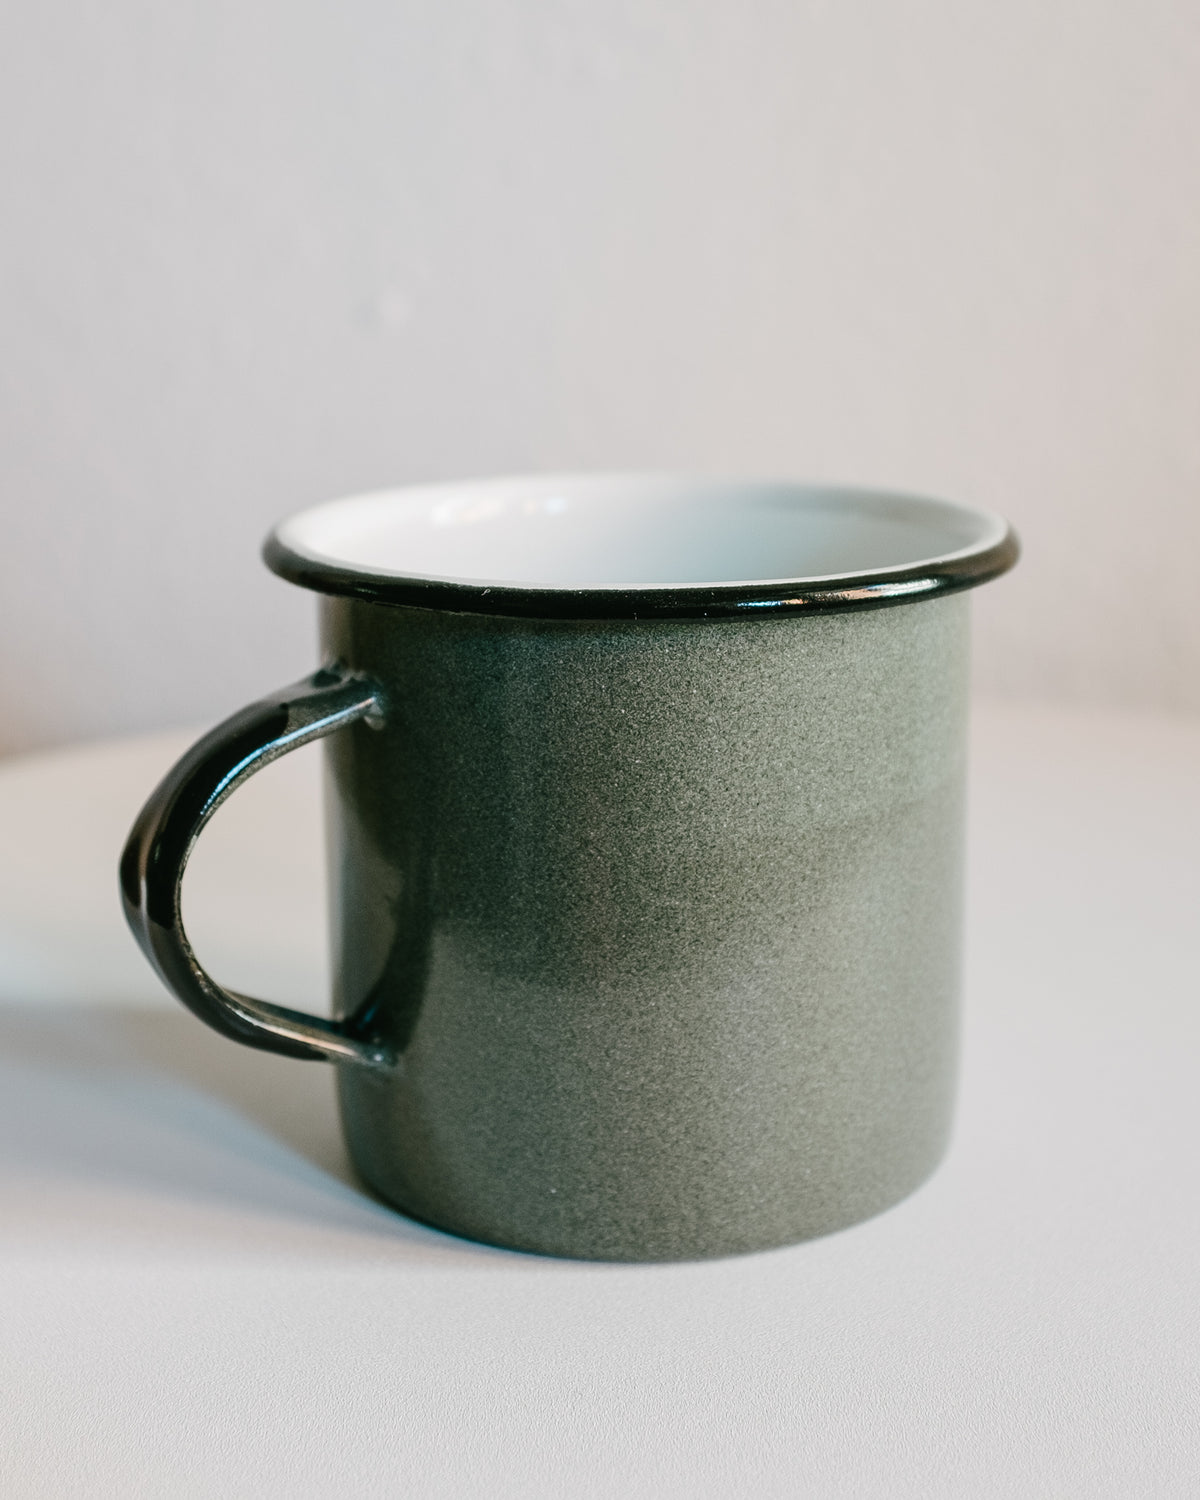 OLIVE ENAMELED METAL MUG